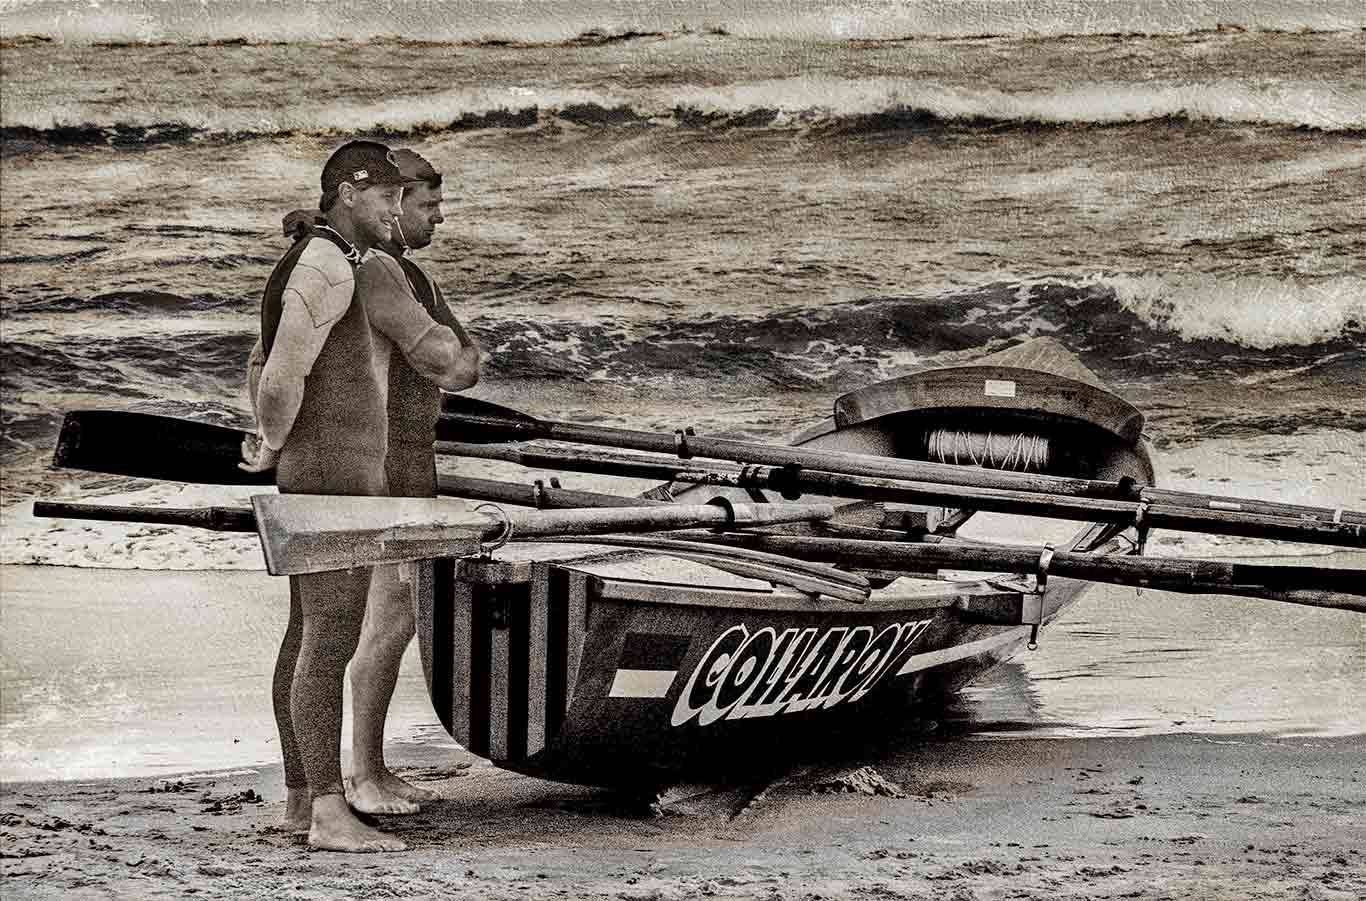 Rowing Team 2, Bondi Beach, Australia